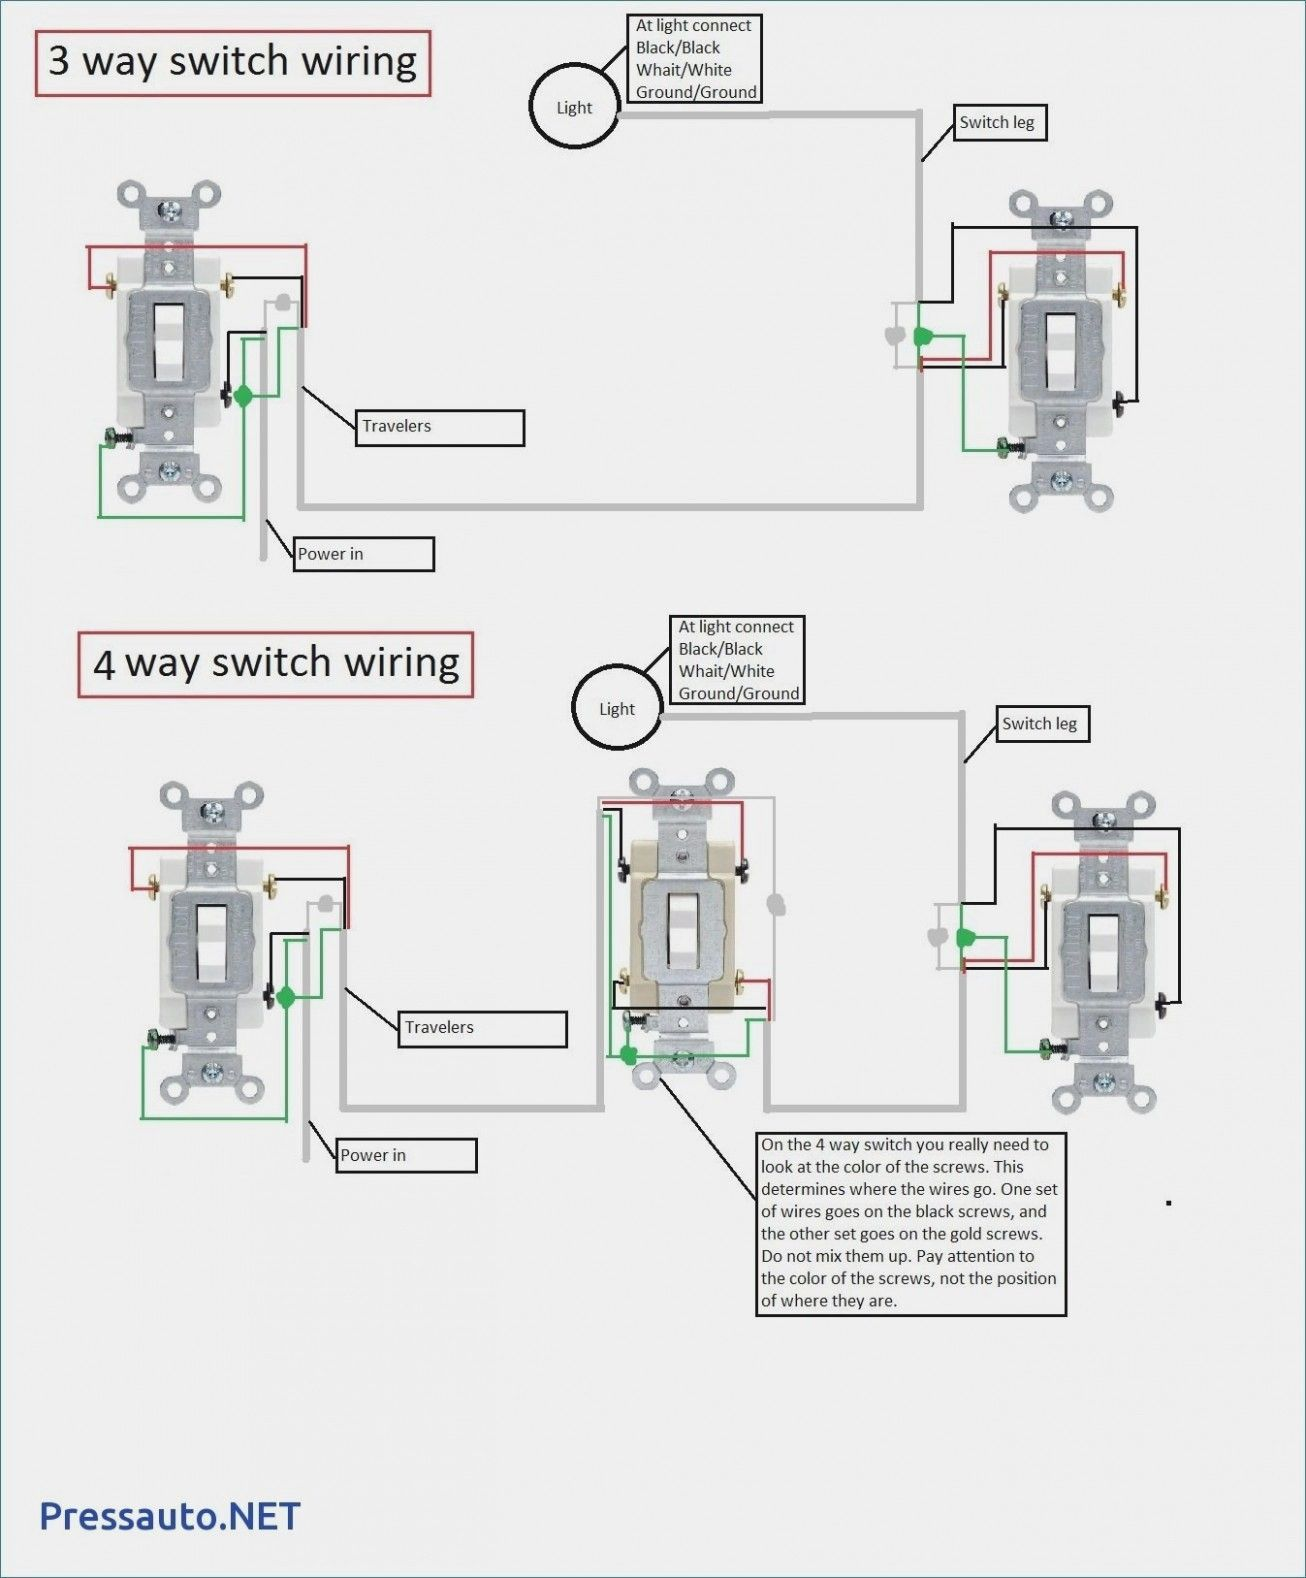 New Wiring Diagram 3 Way Dimmer Switch Light Switch Wiring 3 Way Switch Wiring Light Switch